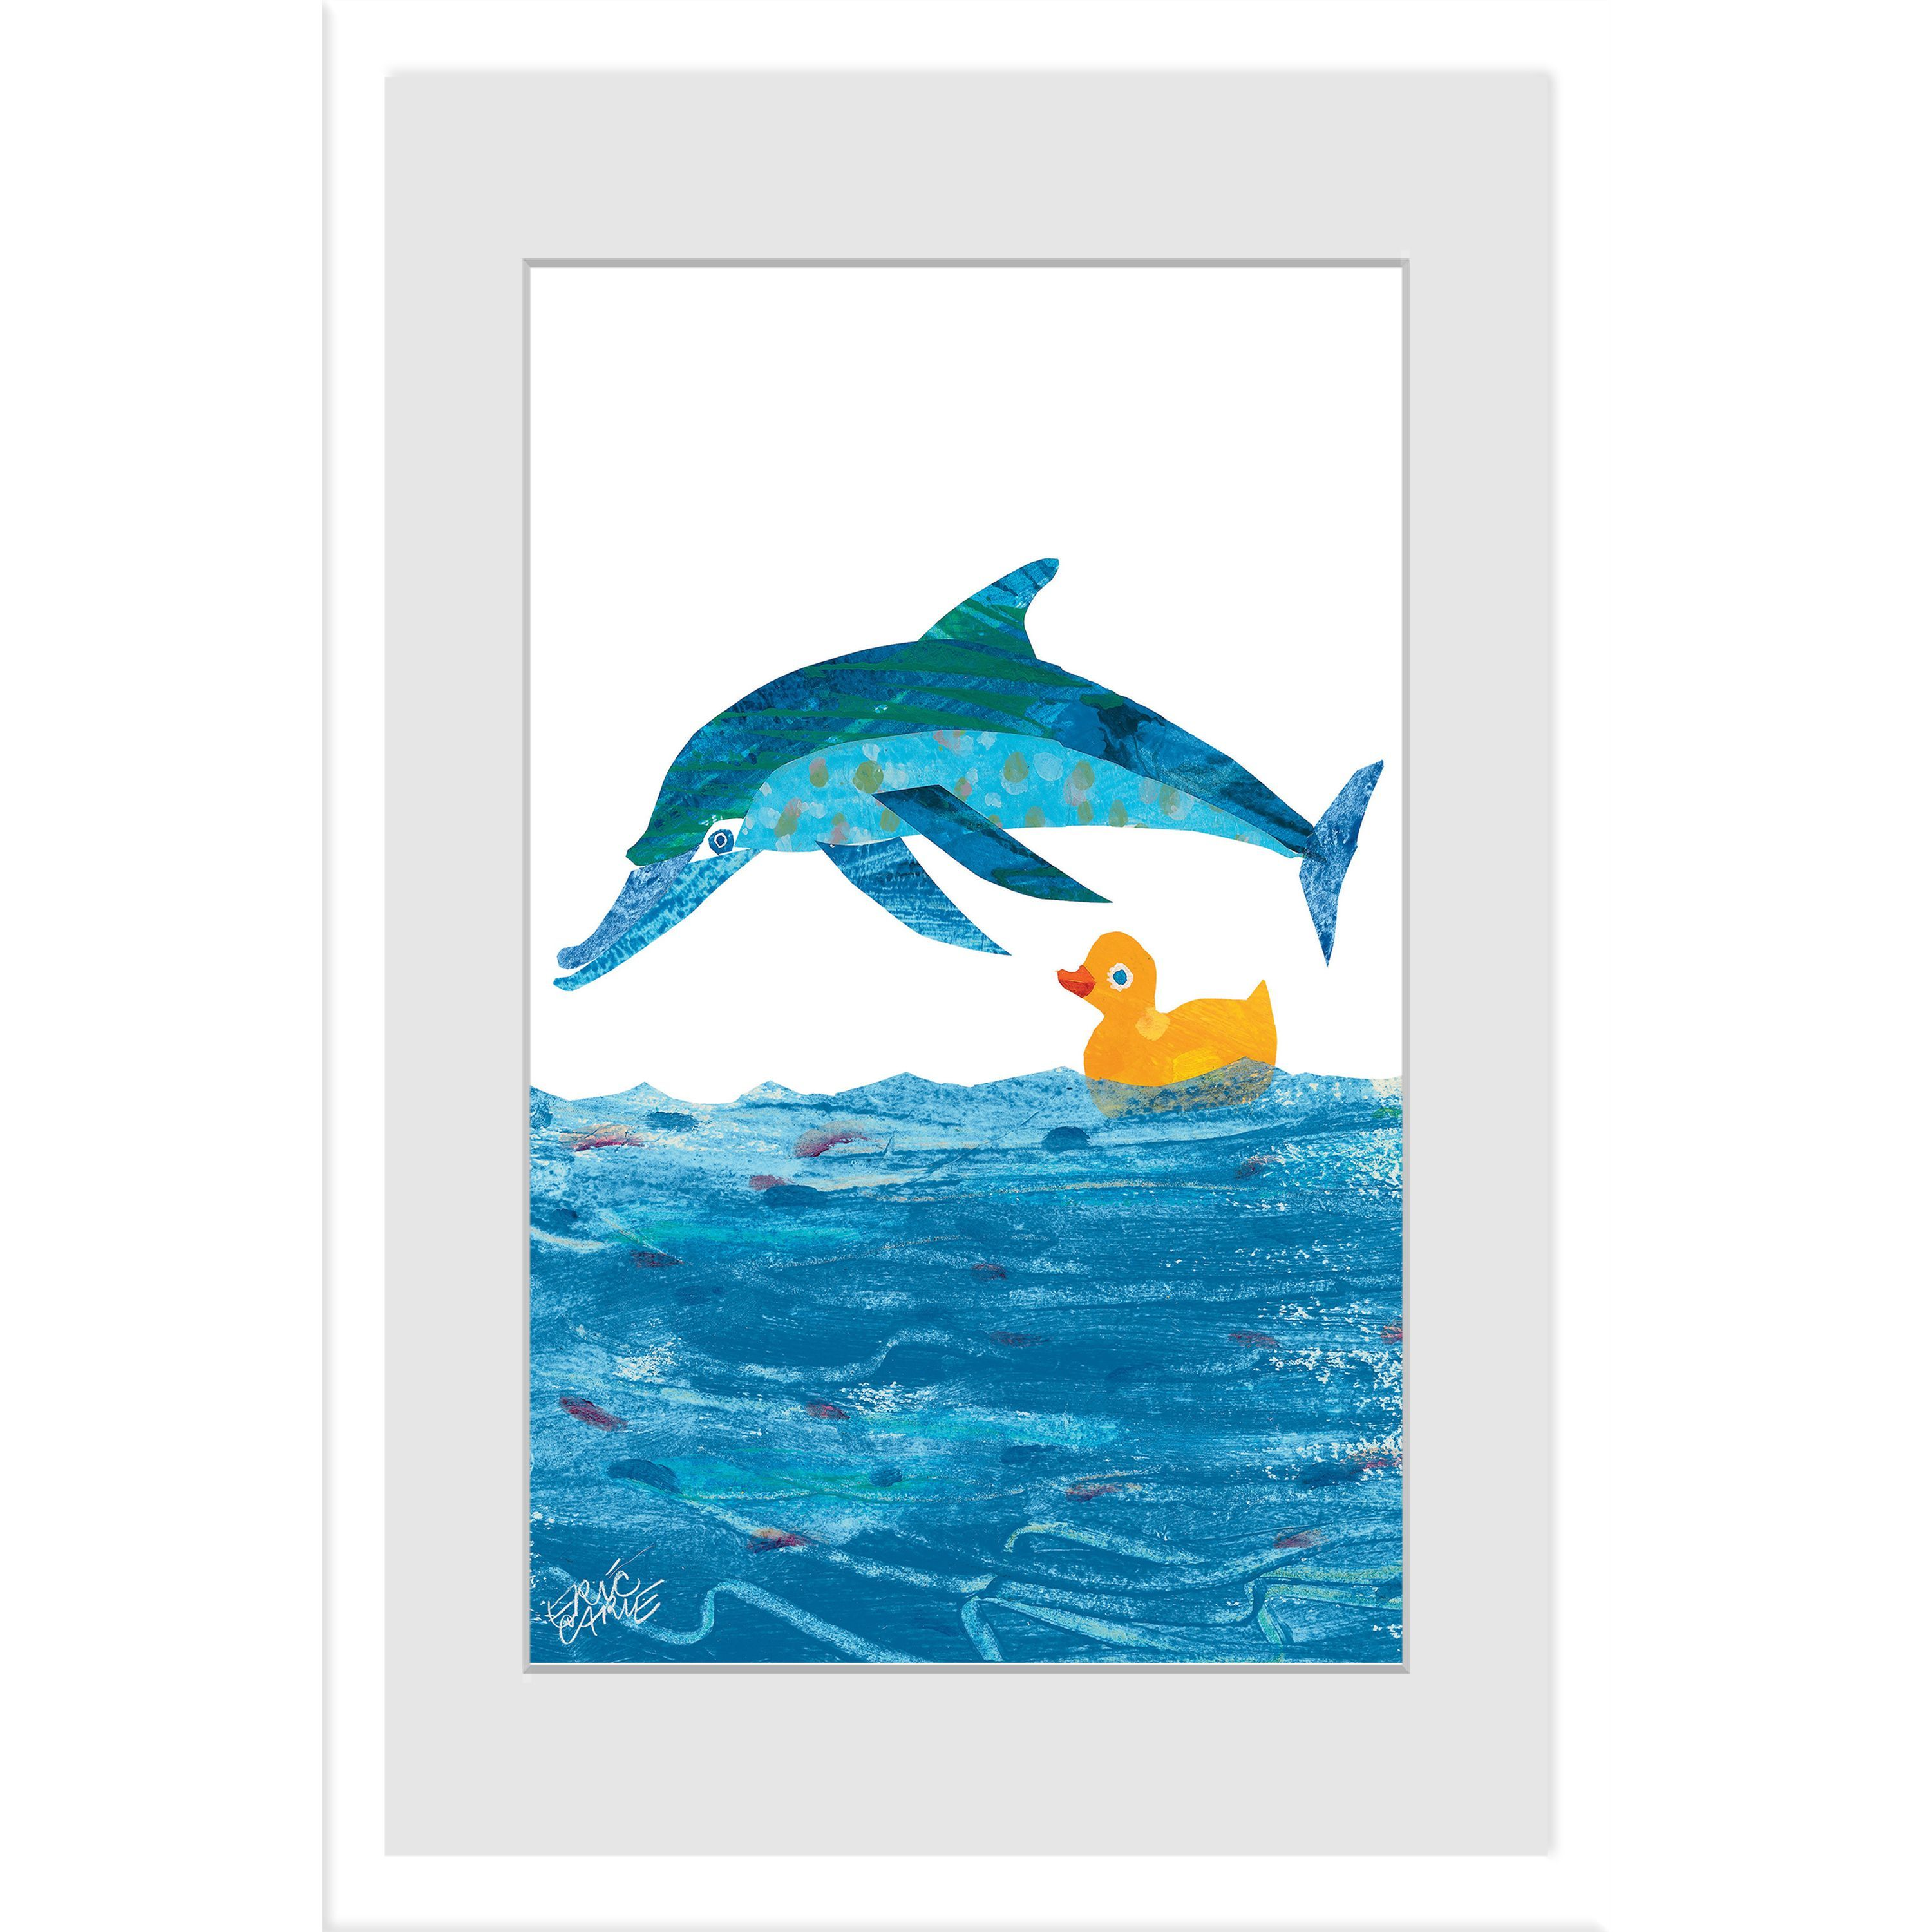 Marmont hill little rubber duck and dolphin by eric carle liartist eric carlelilititle 10 little rubber ducks character art dolphinliliproduct type canvas artli fandeluxe Image collections